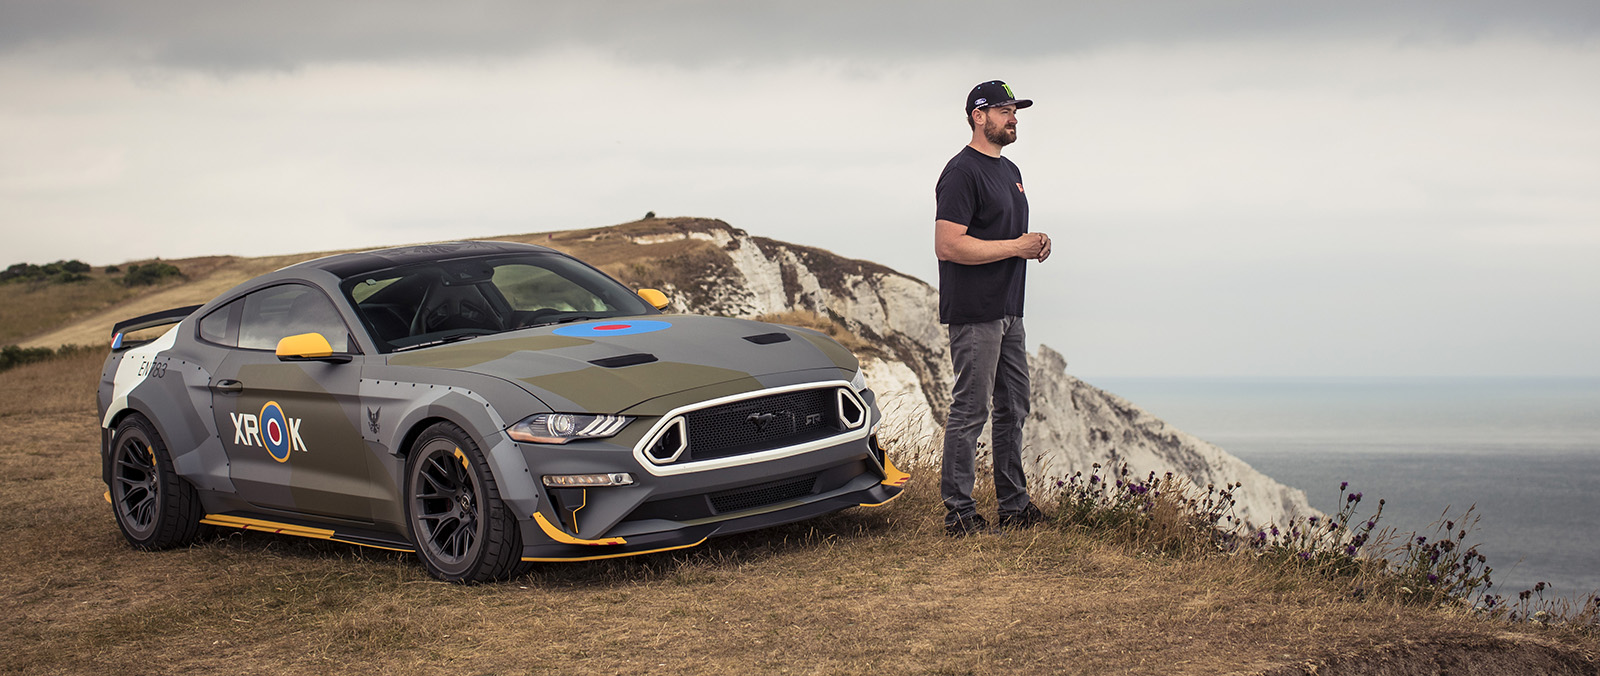 Ford Mustang GT Eagle Squadron is uniek